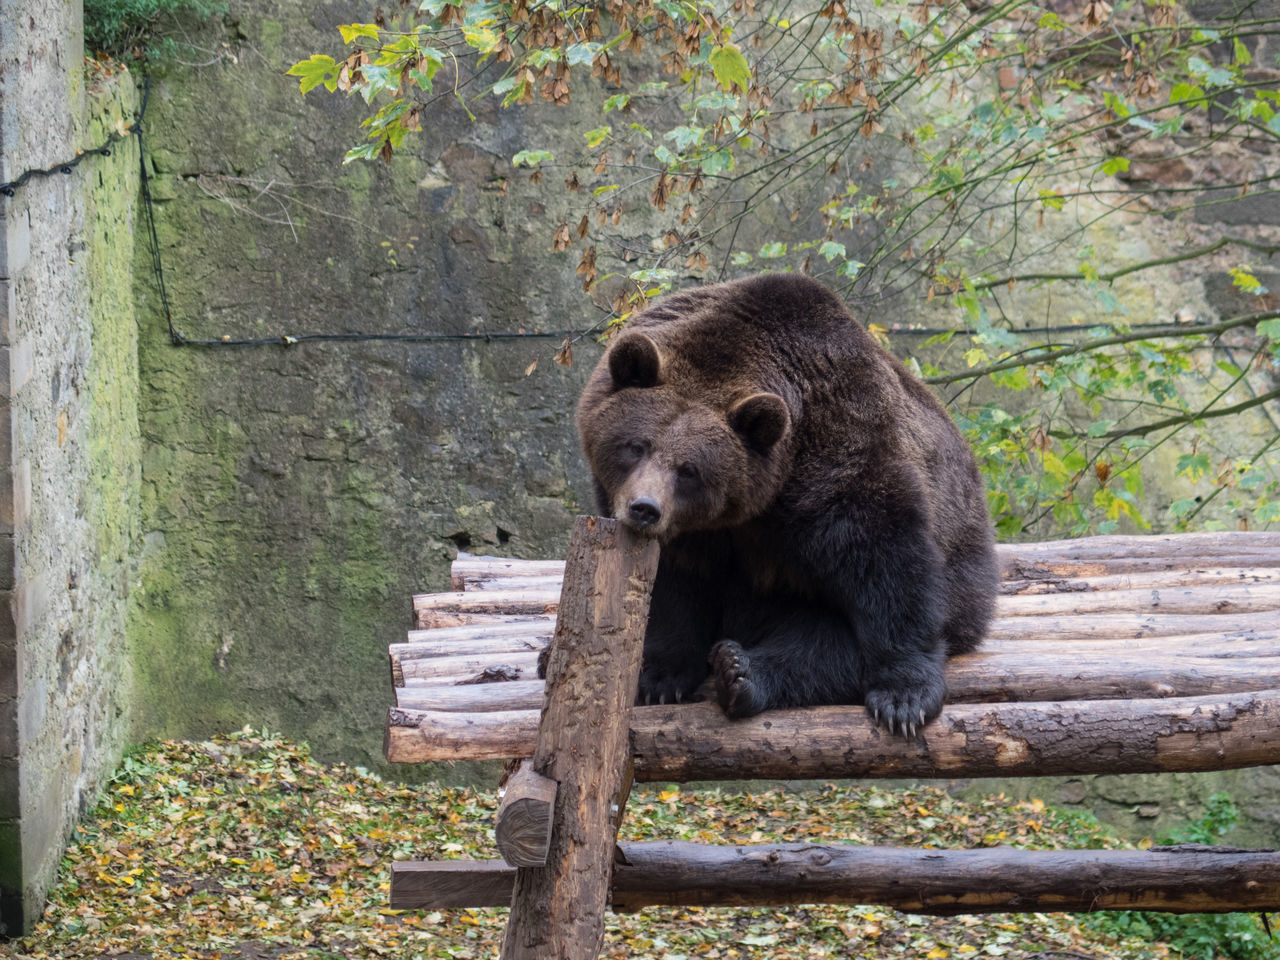 bear, animal wildlife, one animal, wood - material, grizzly bear, animals in the wild, outdoors, mammal, day, animal themes, no people, nature, tree